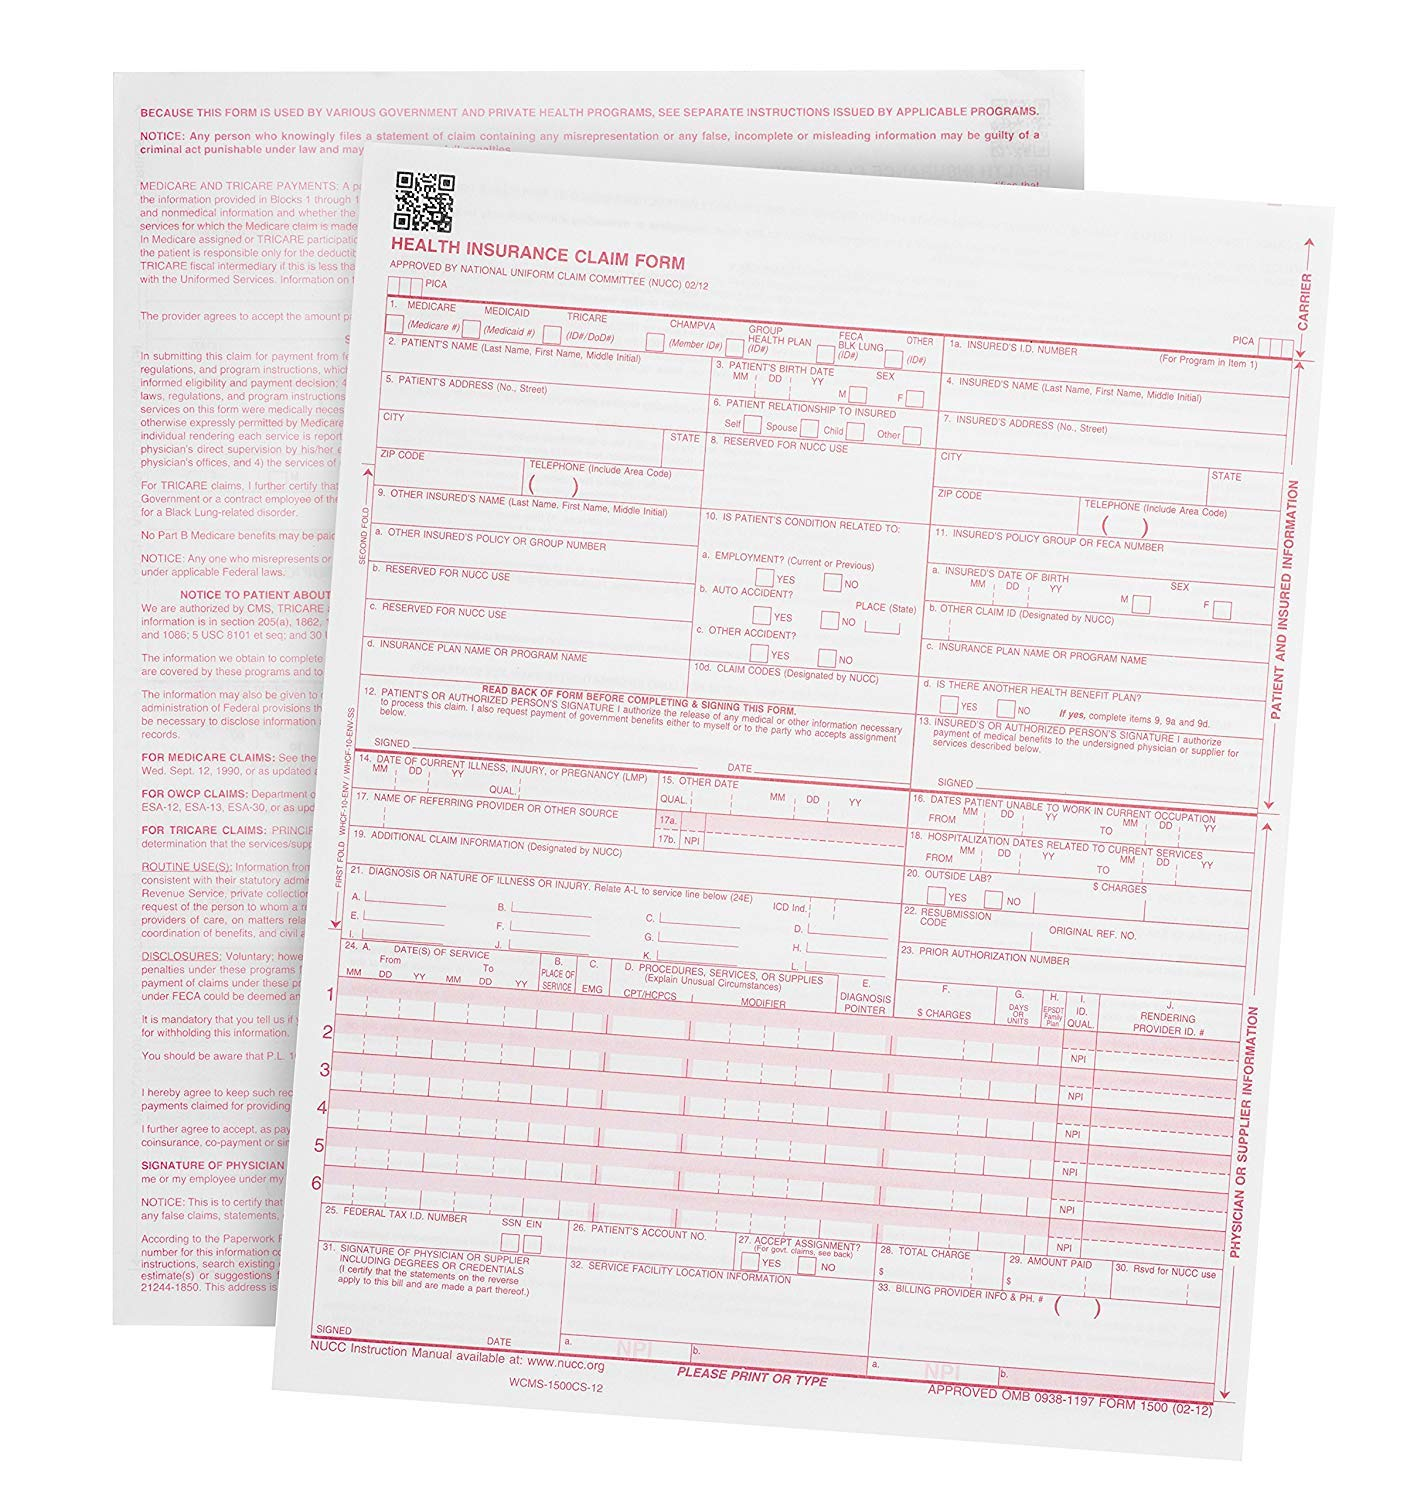 Blue Summit Supplies 500 CMS-1500 Claim Forms – Current HCFA 02/2012 Version New Version- Forms Will line up with Billing Software and Laser Compatible- 500 Sheets – 8.5'' x 11 (1000 Sheets) by Blue Summit Supplies (Image #1)